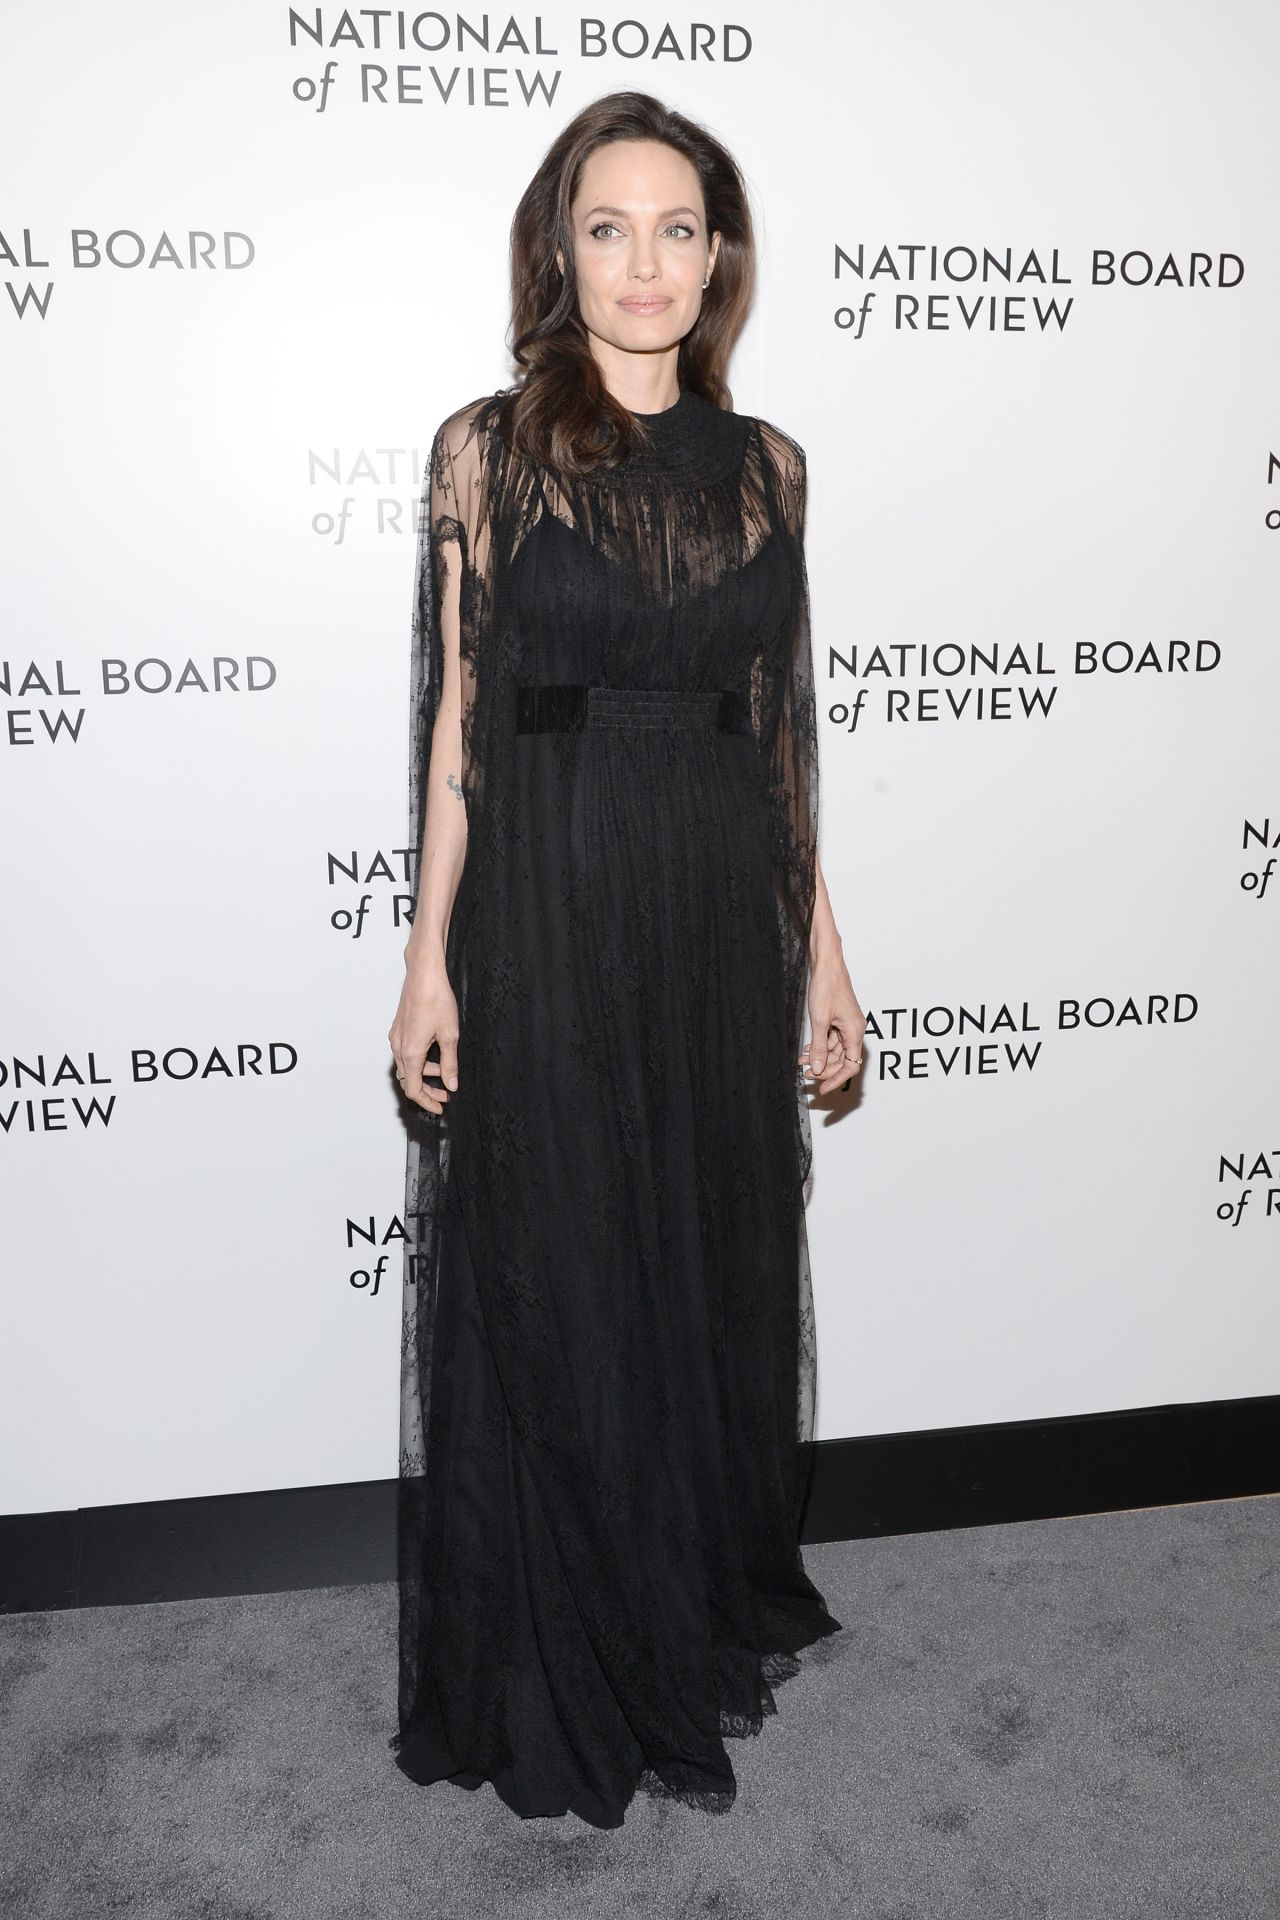 http://celebmafia.com/wp-content/uploads/2018/01/angelina-jolie-the-national-board-of-review-annual-awards-gala-in-nyc-8.jpg